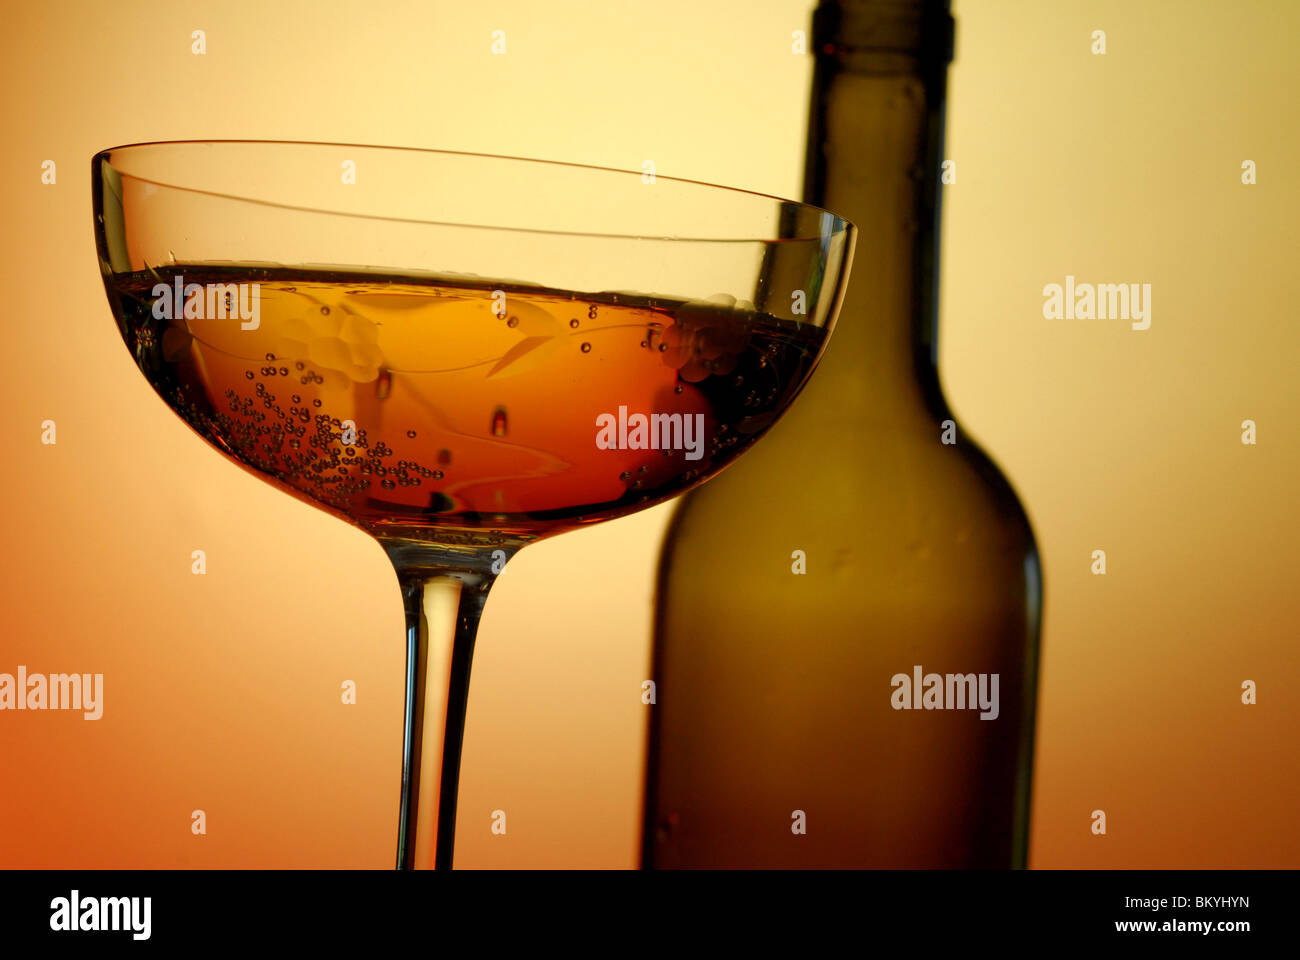 Abstract image of a glass of wine from below with a bottle in the distance - Stock Image